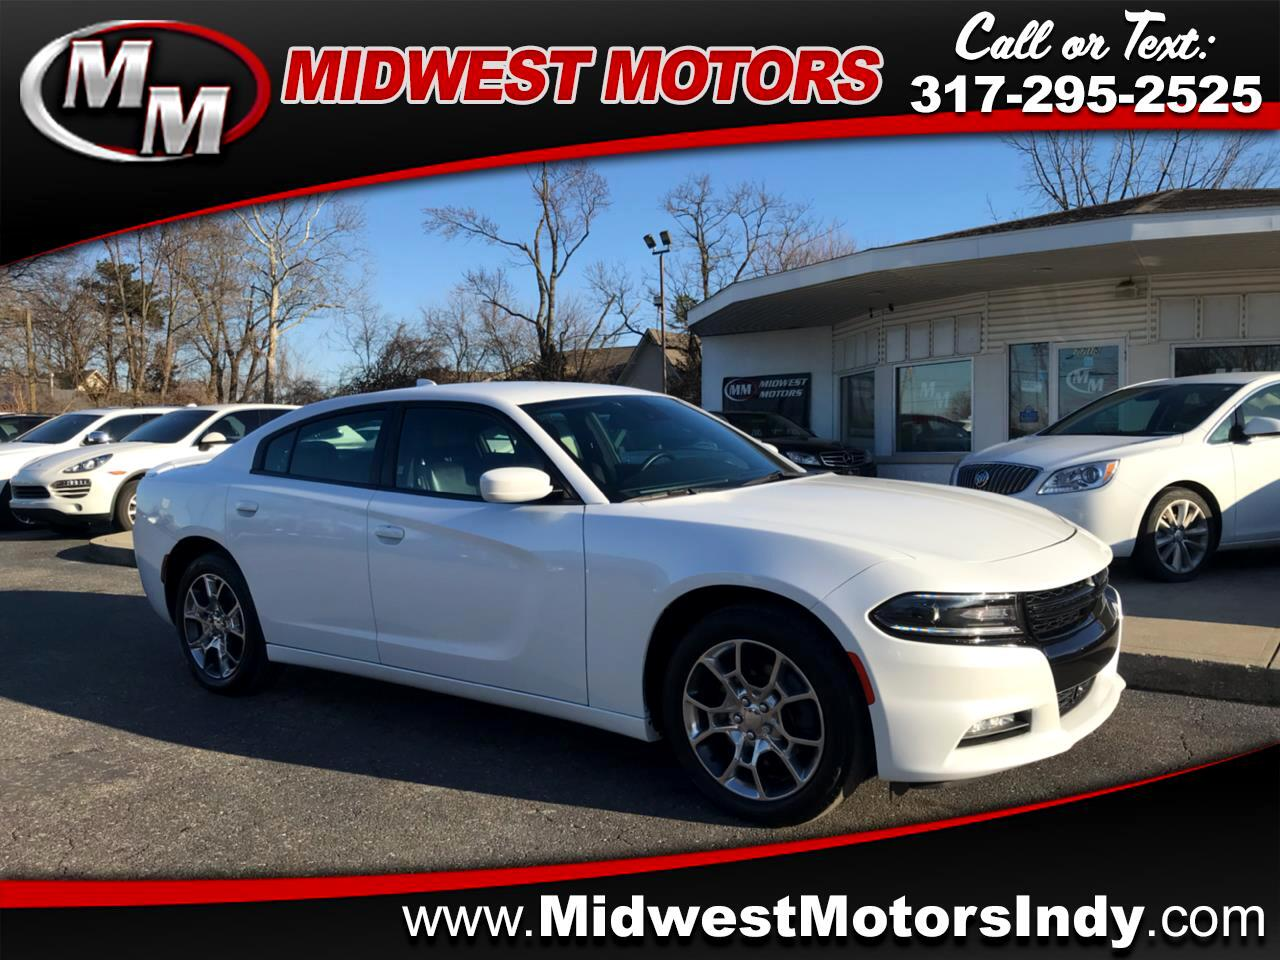 2015 Dodge Charger SXT RALLYE AWD